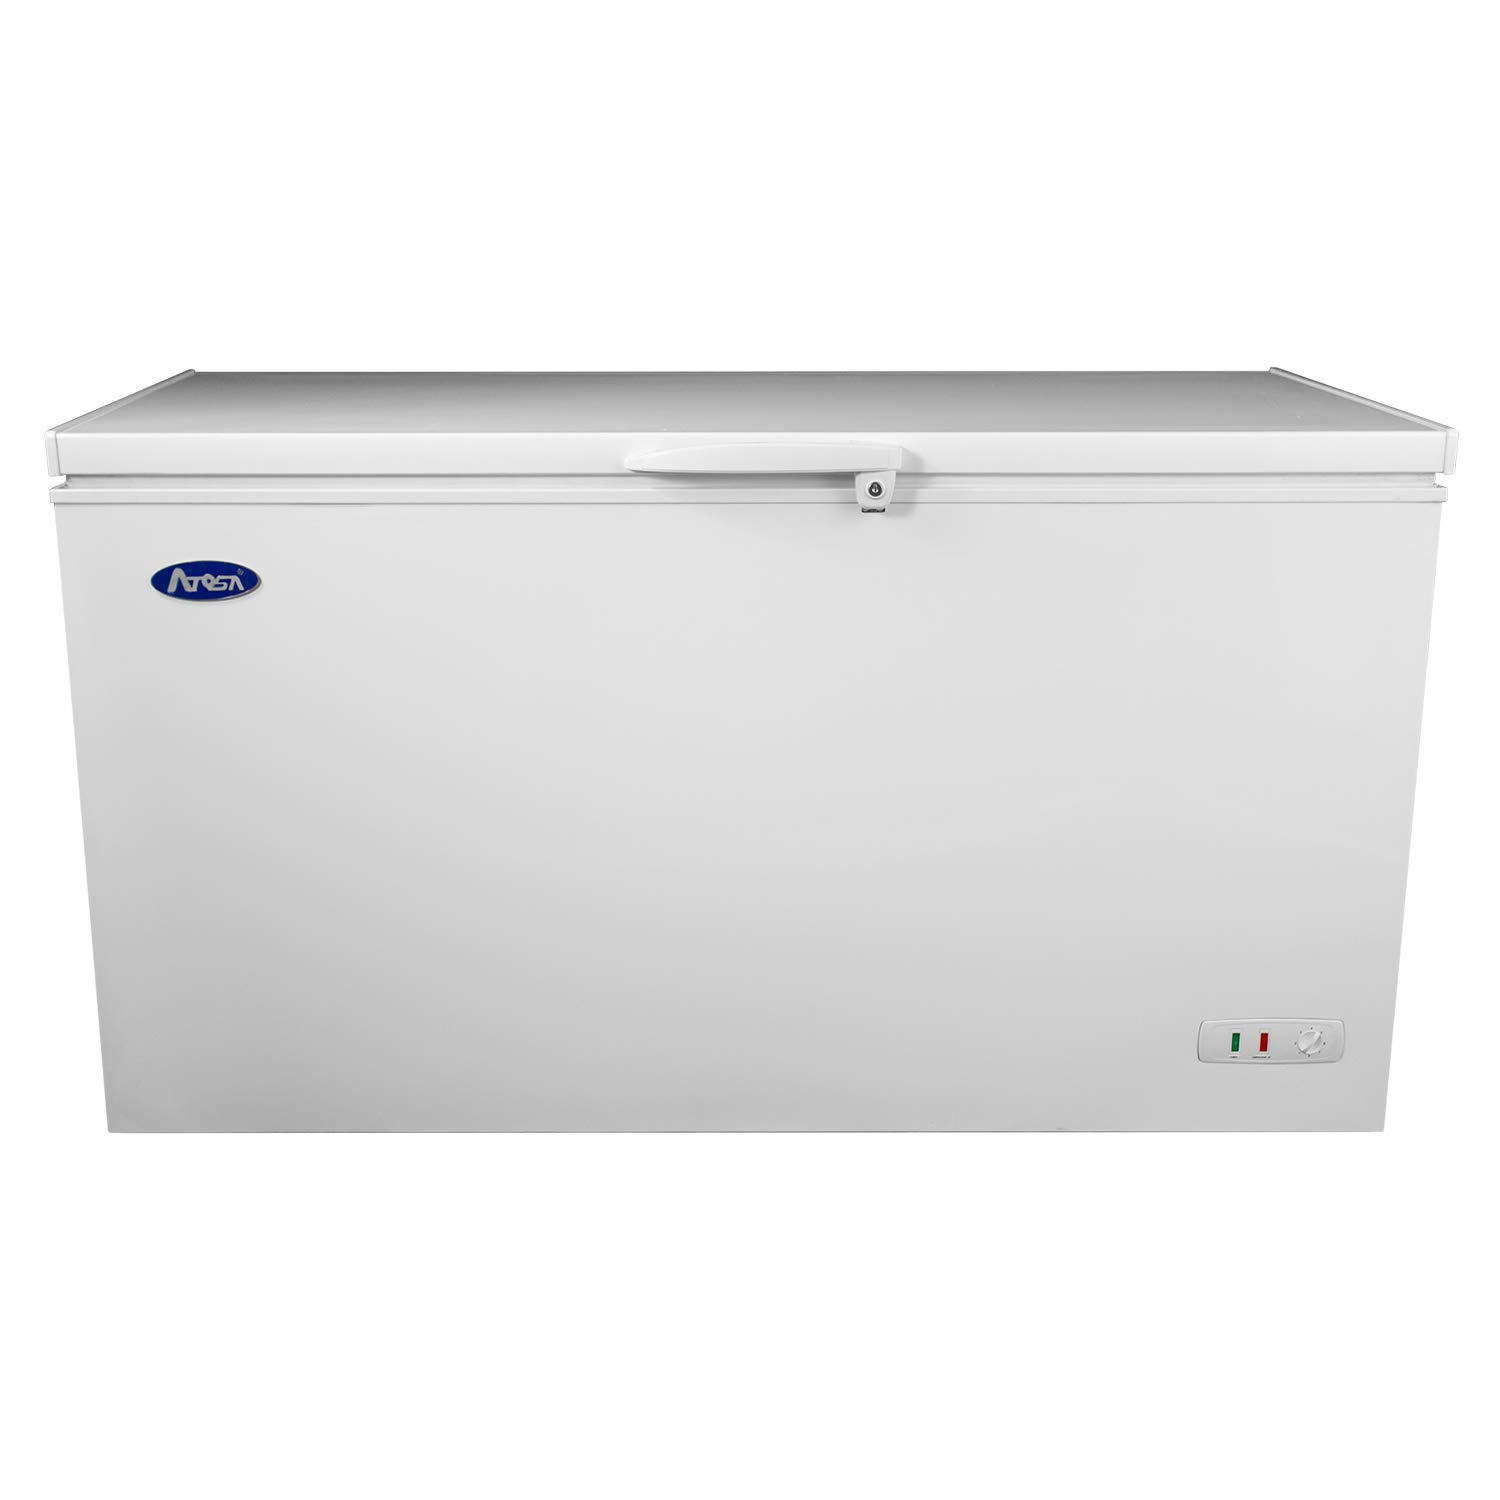 Commercial Top Chest Freezer - Atosa 9.6 Cu. Ft Deep Ice Cream Freezer with Adjustable Thermostat, Lock,Rollers, White(MWF-9010)